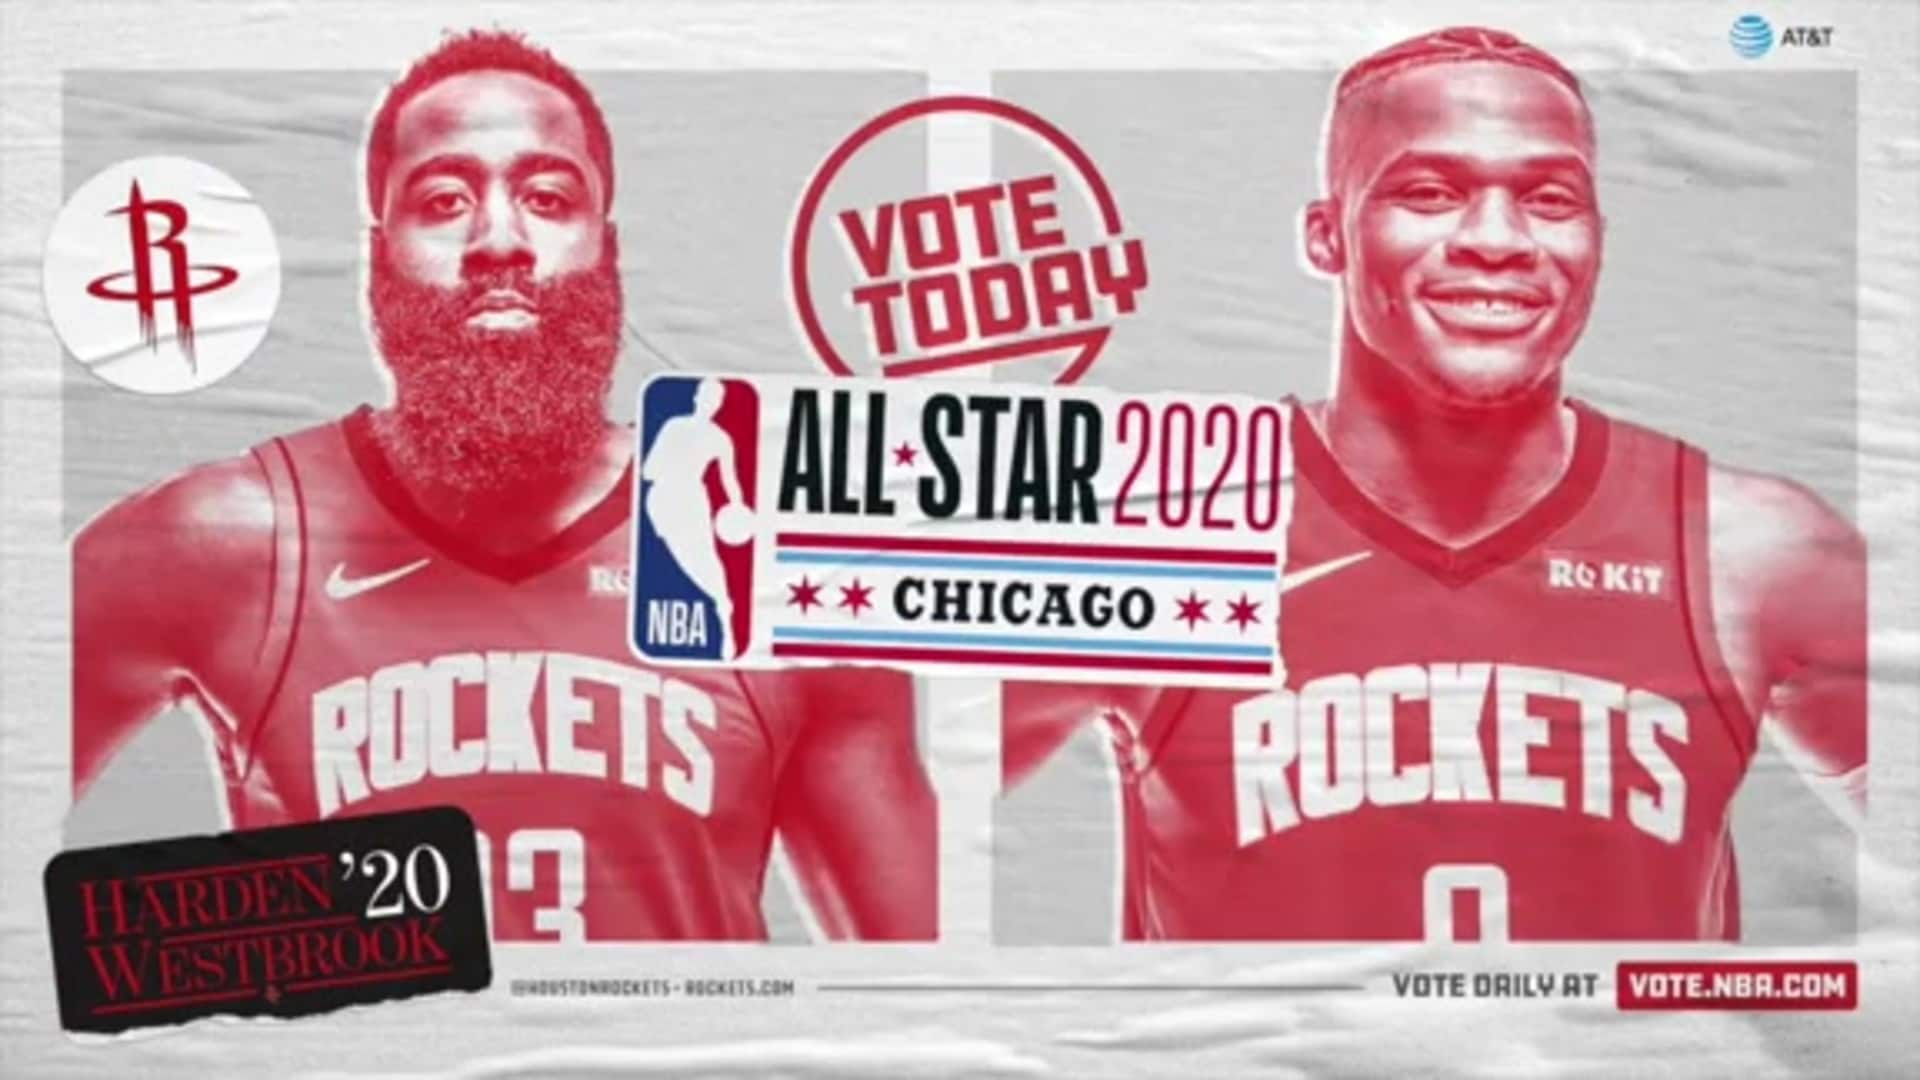 Vote Rockets For All Star 2020 Houston Rockets